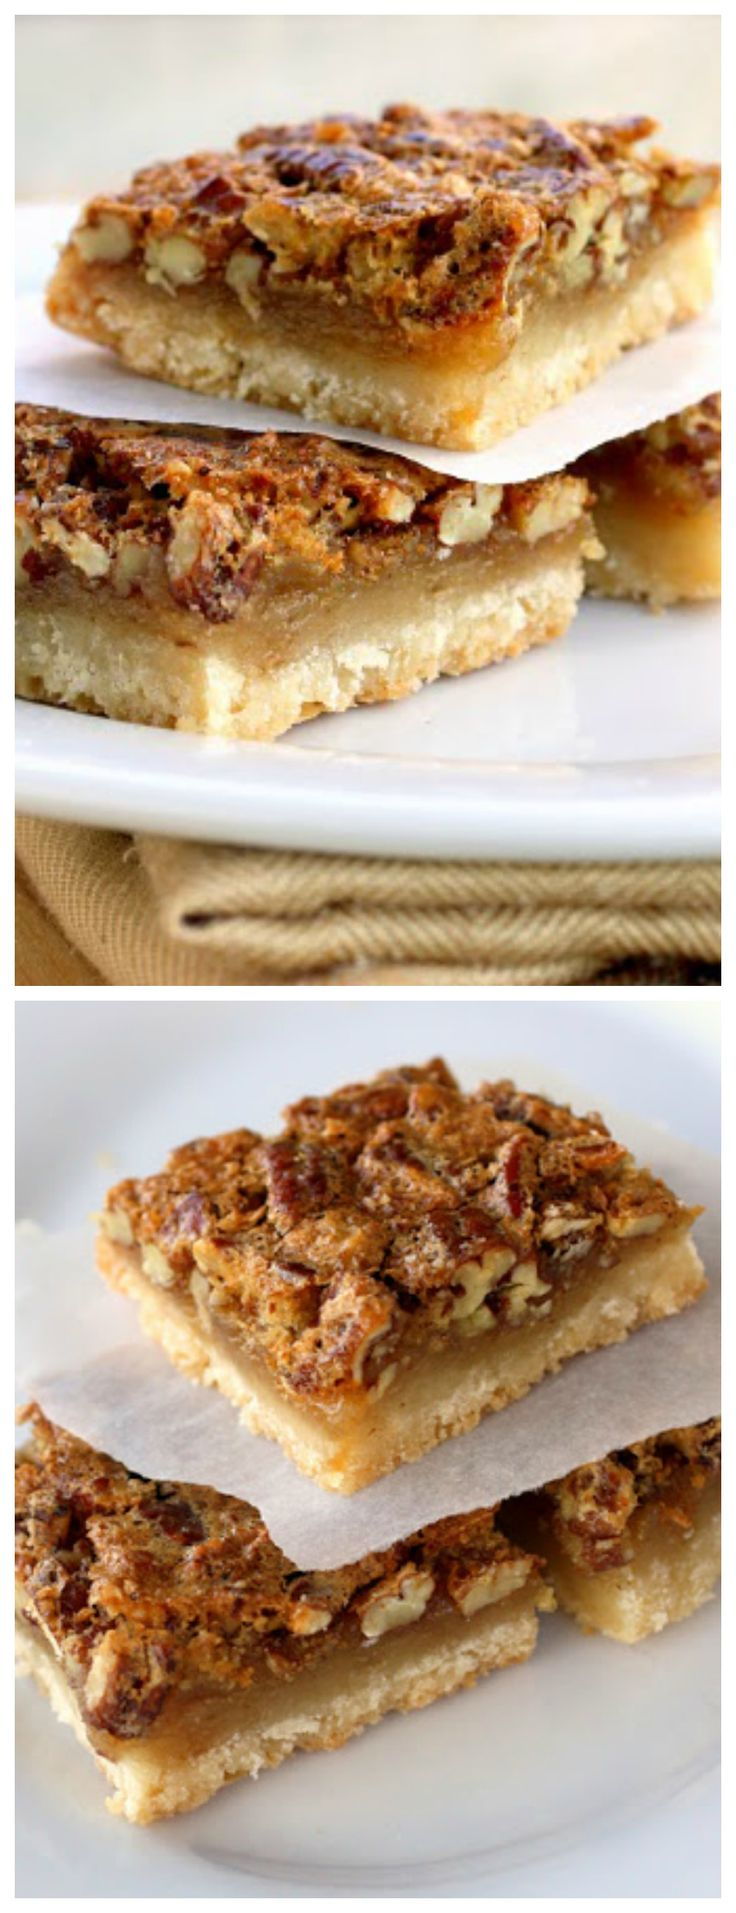 Pecan Pie Bars - A melt in your mouth shortbread crust with a pecan pie topping. This tastes just like the pie. the-girl-who-ate-everything.com